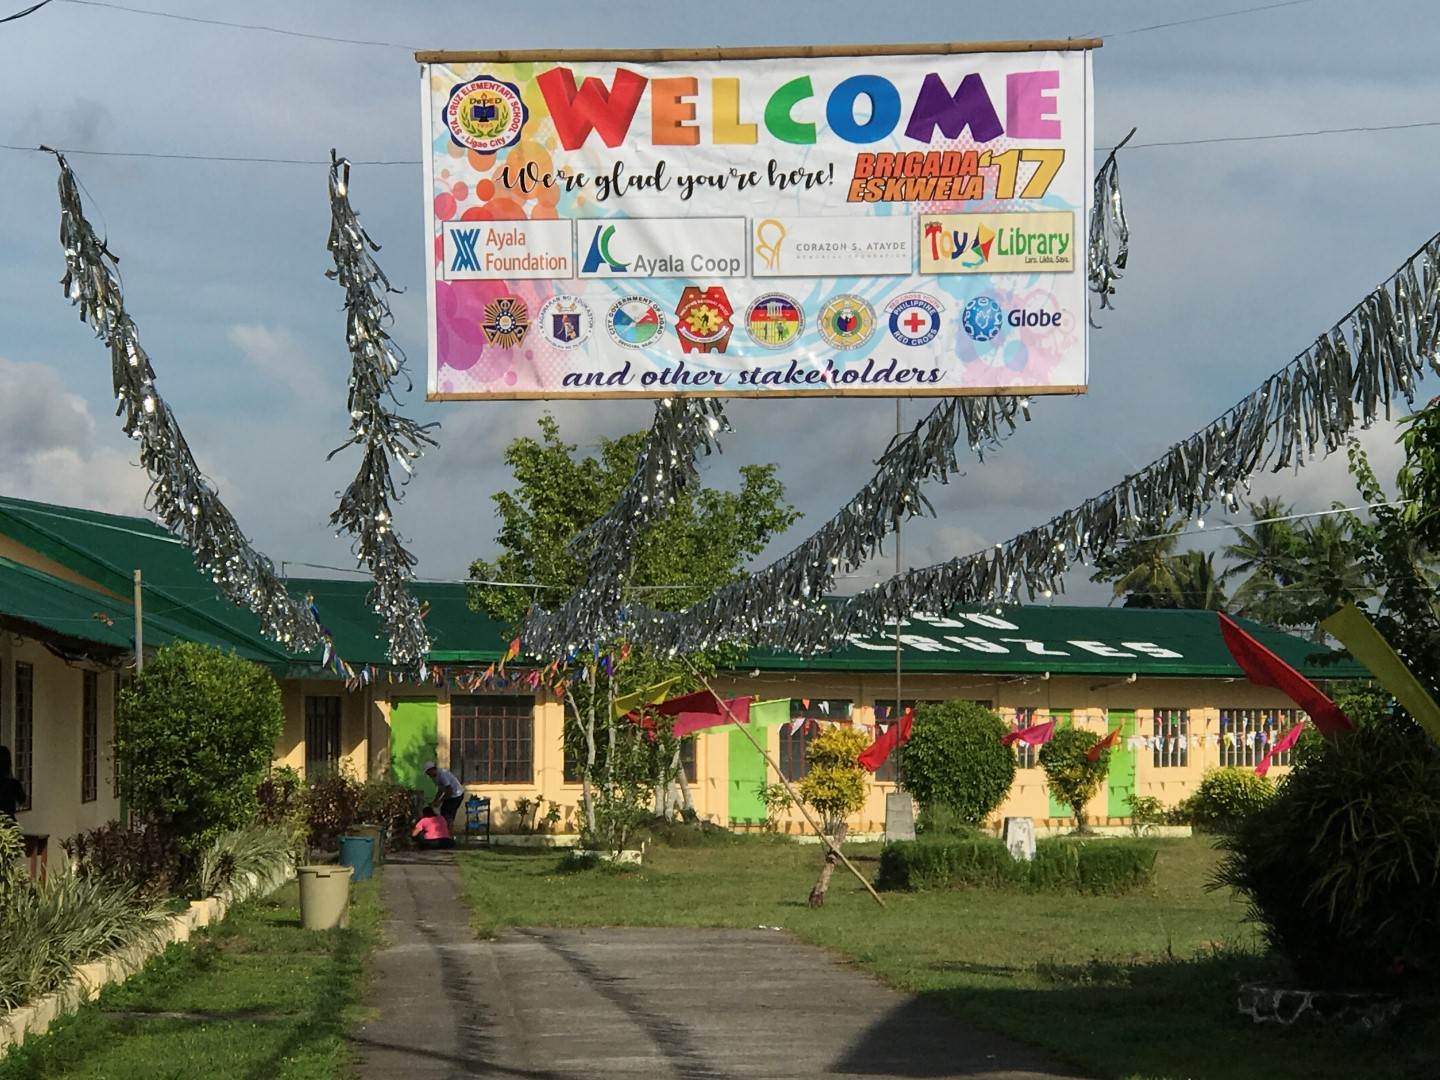 The streamer welcoming participants in the Brigada Eskwela 2017 project at the Sta. Cruz Elementary School hangs in front of the school grounds.